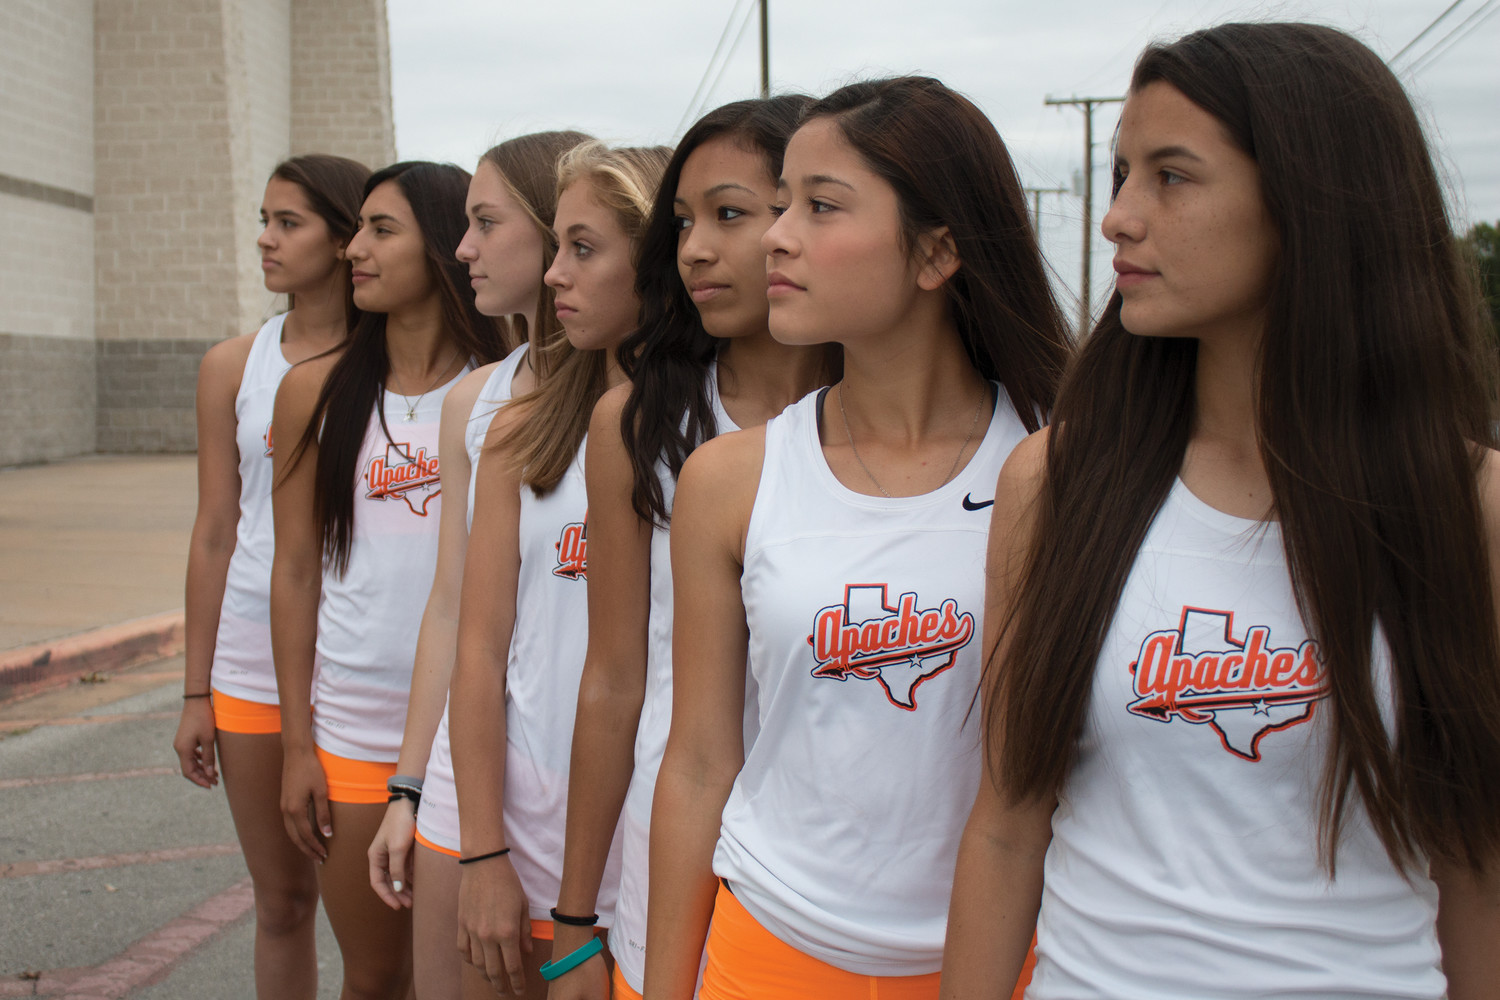 GONZALES: